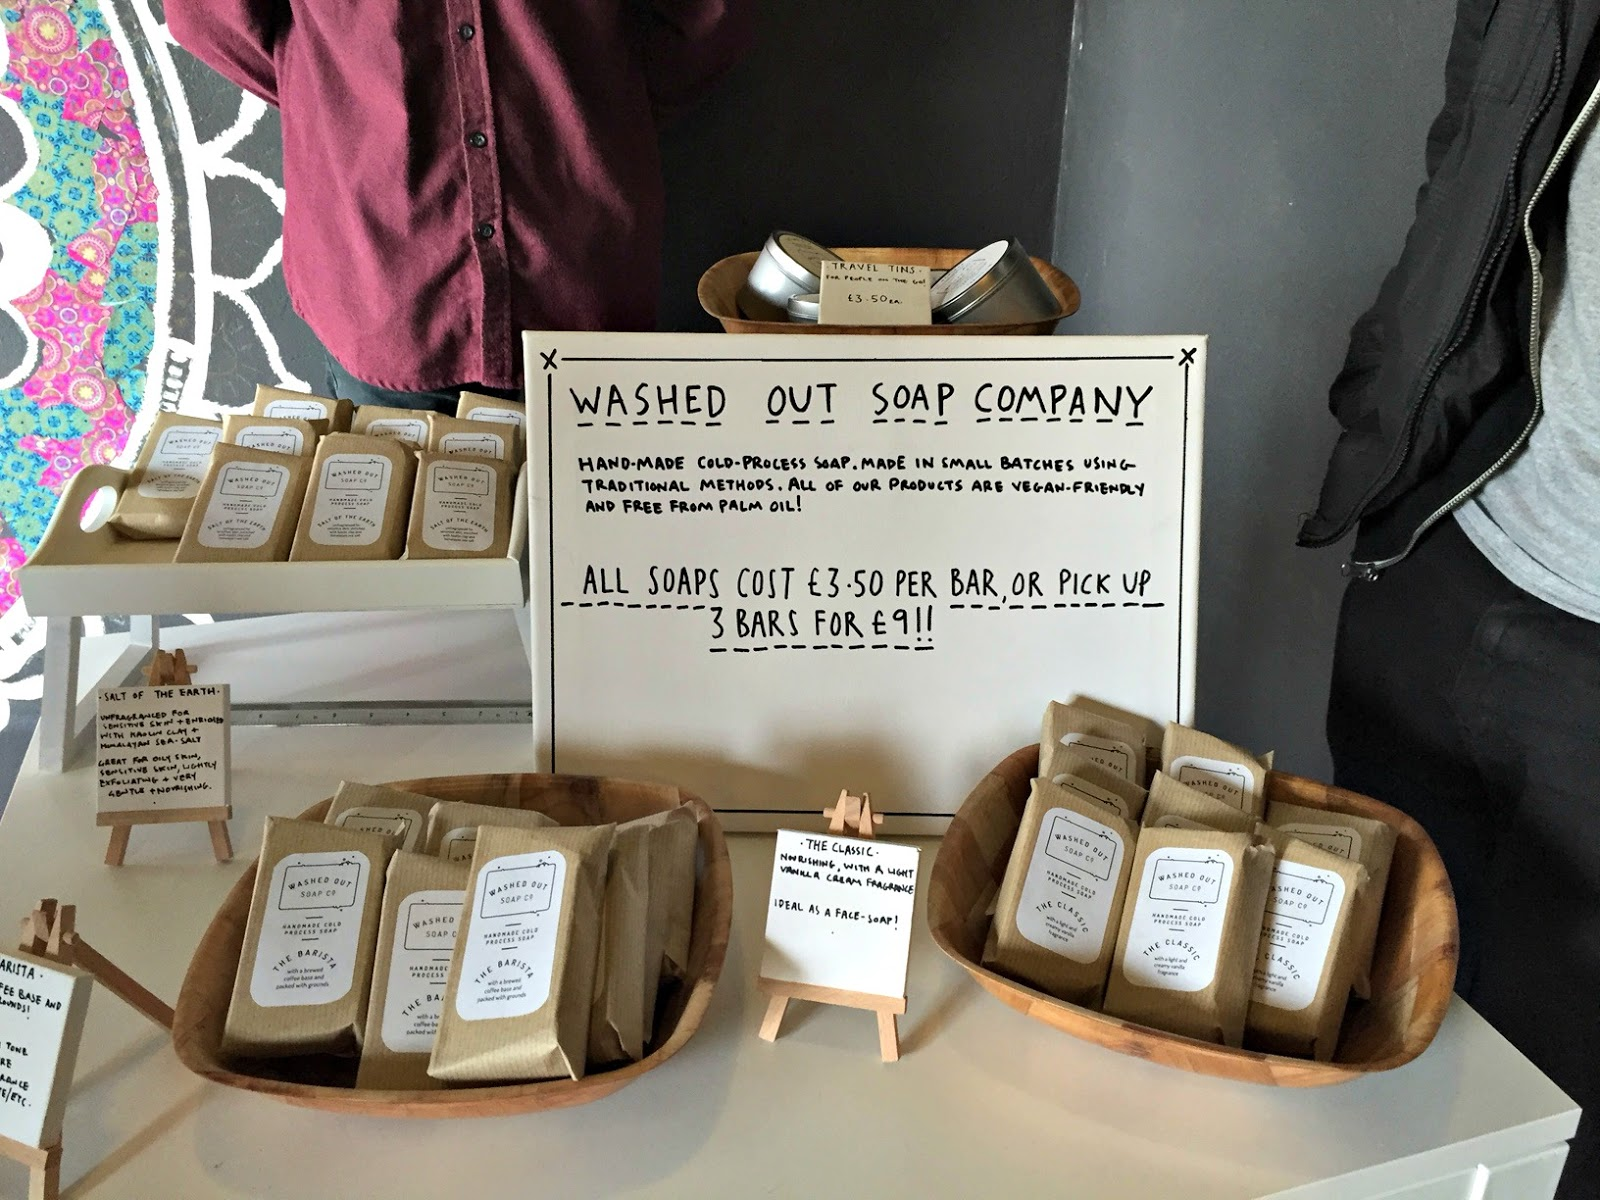 Washed Out Soap Company